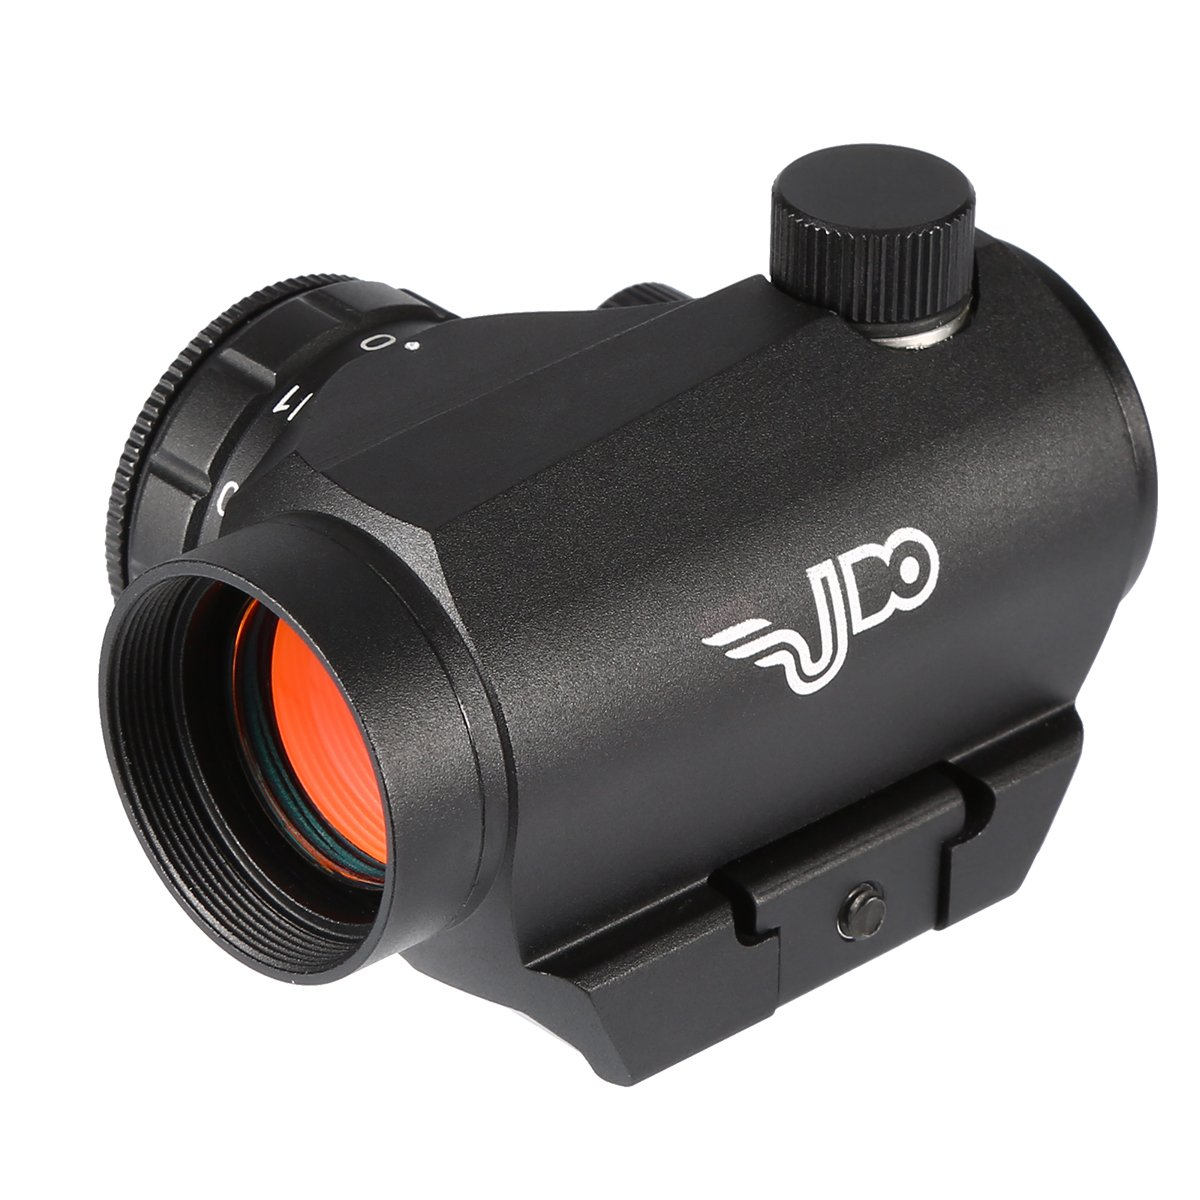 Udo Red Dot Sight With 2MOA Dot Accuracy, Shock Water Fog Proof Durable, 11 brightness levels, Warranty, Black